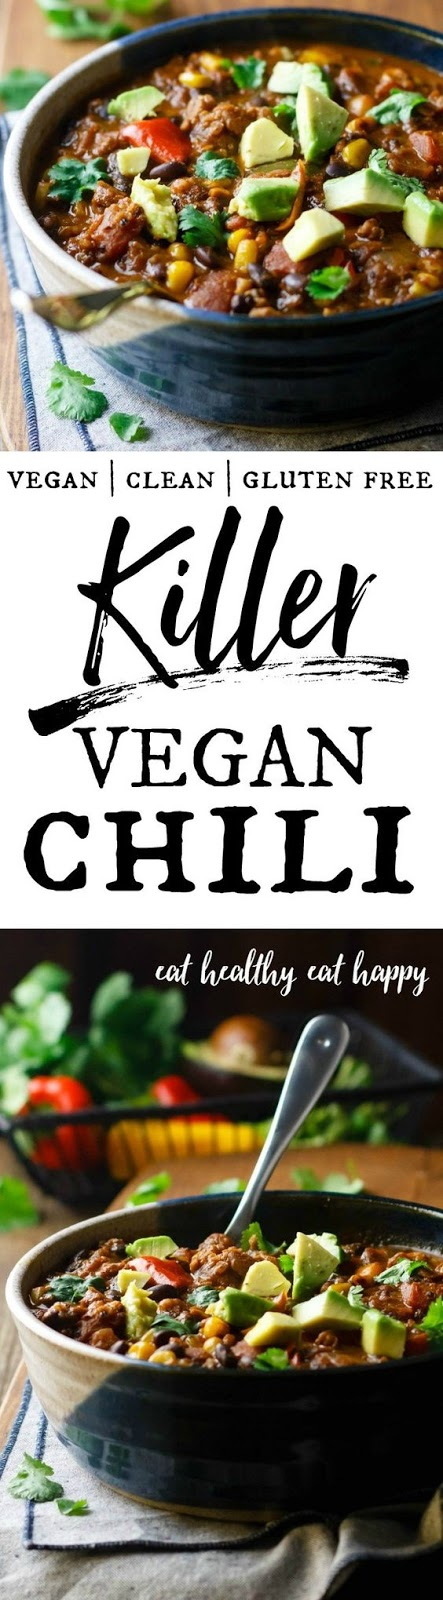 Killer Vegan Chili - hold on to your soup spoons, 'cause this is some killer chili. It's hearty, spicy and packed with slow-cooked flavor! A great source of fiber, vitamins, nutrients and vegan protein.